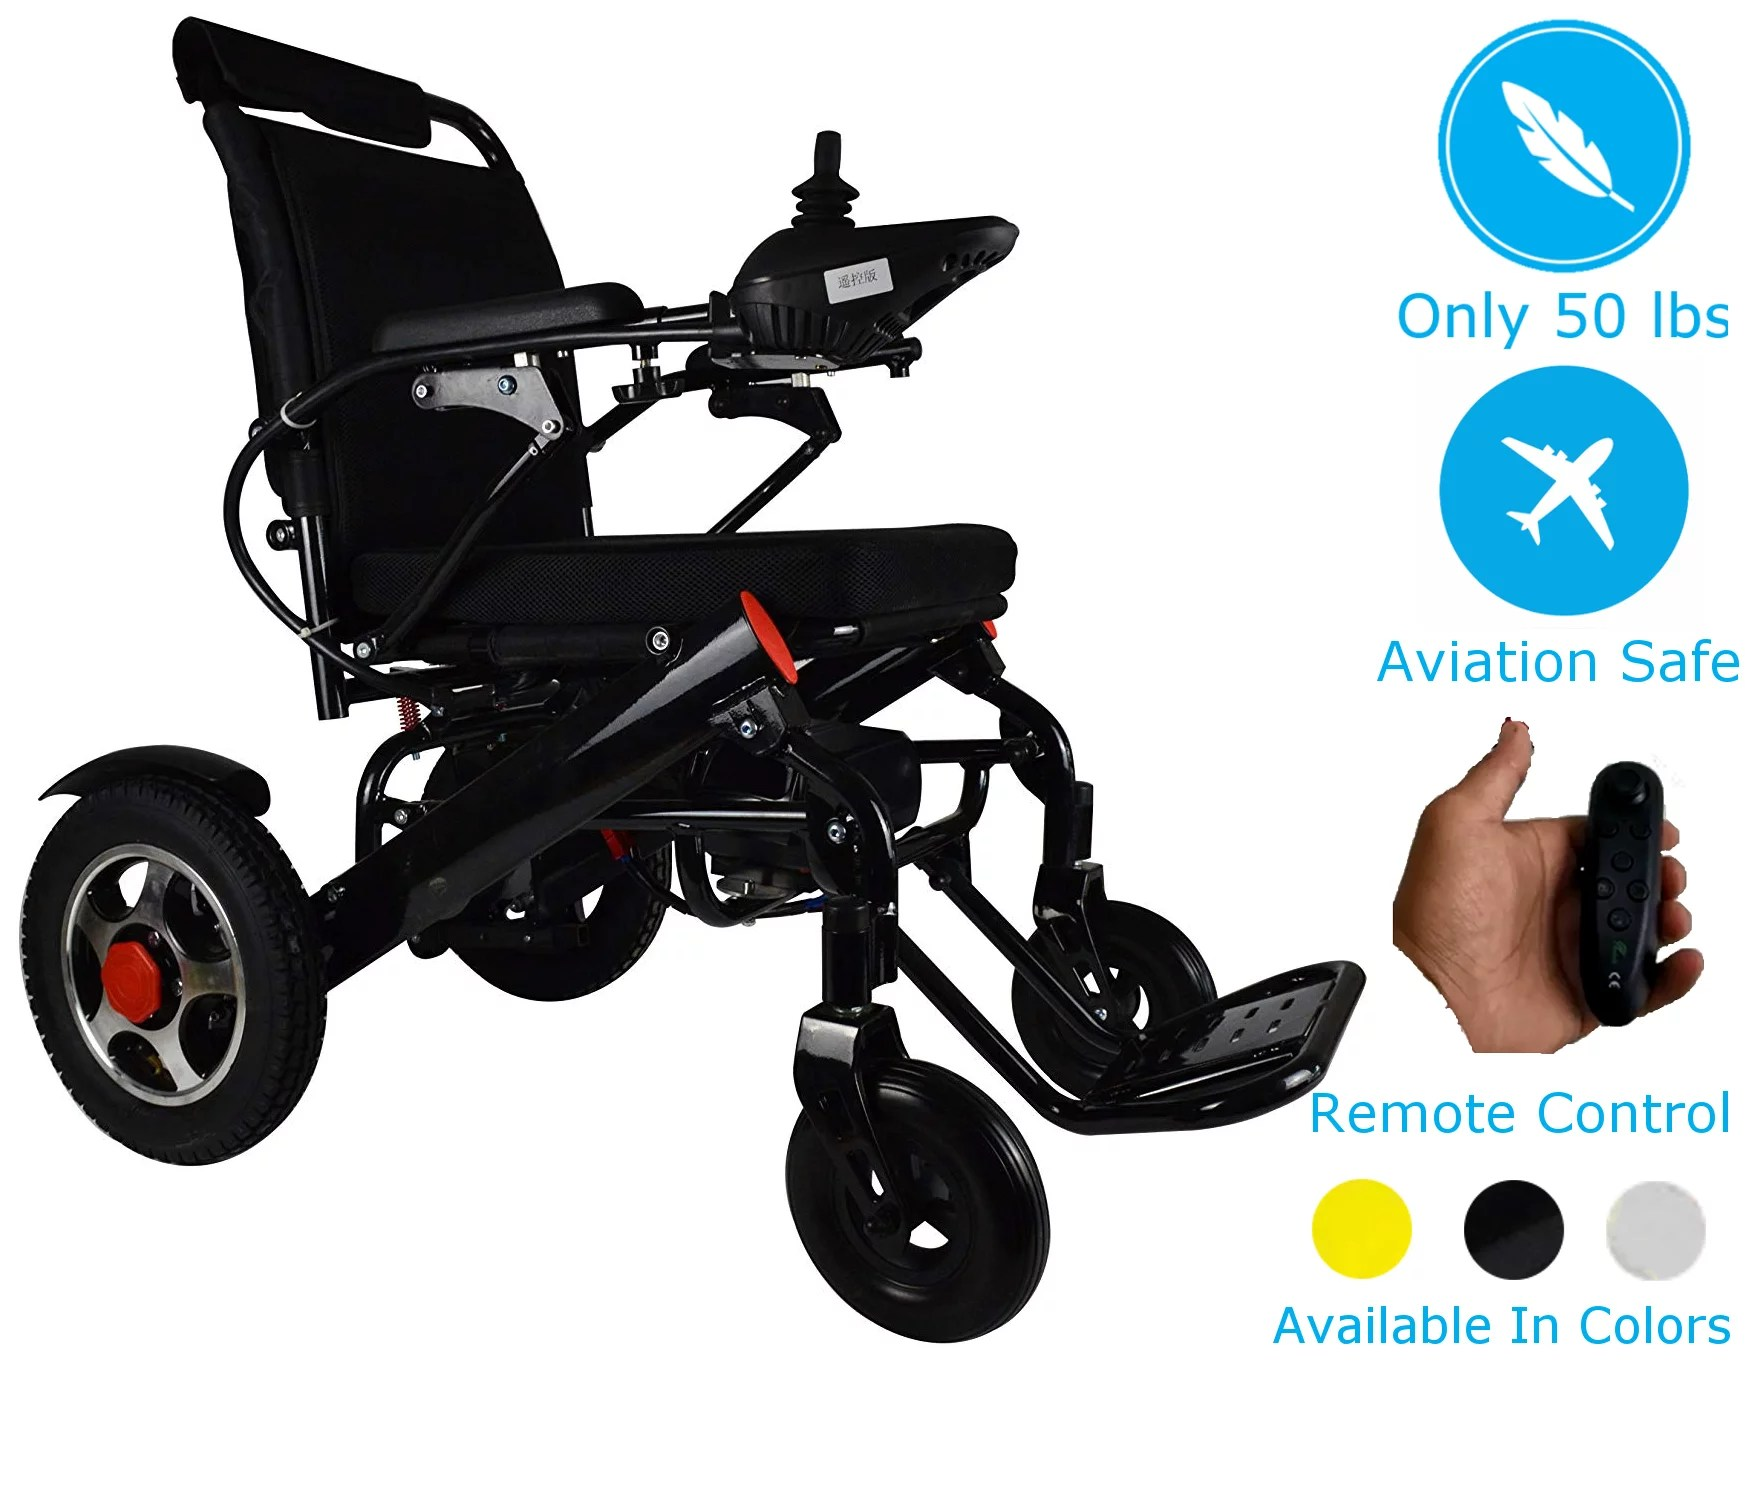 electric wheel chairs oak table and pressed back foldable wheelchair with remote control medical mobility aid scooter heavy duty power lightweight wheelchairs walmart com